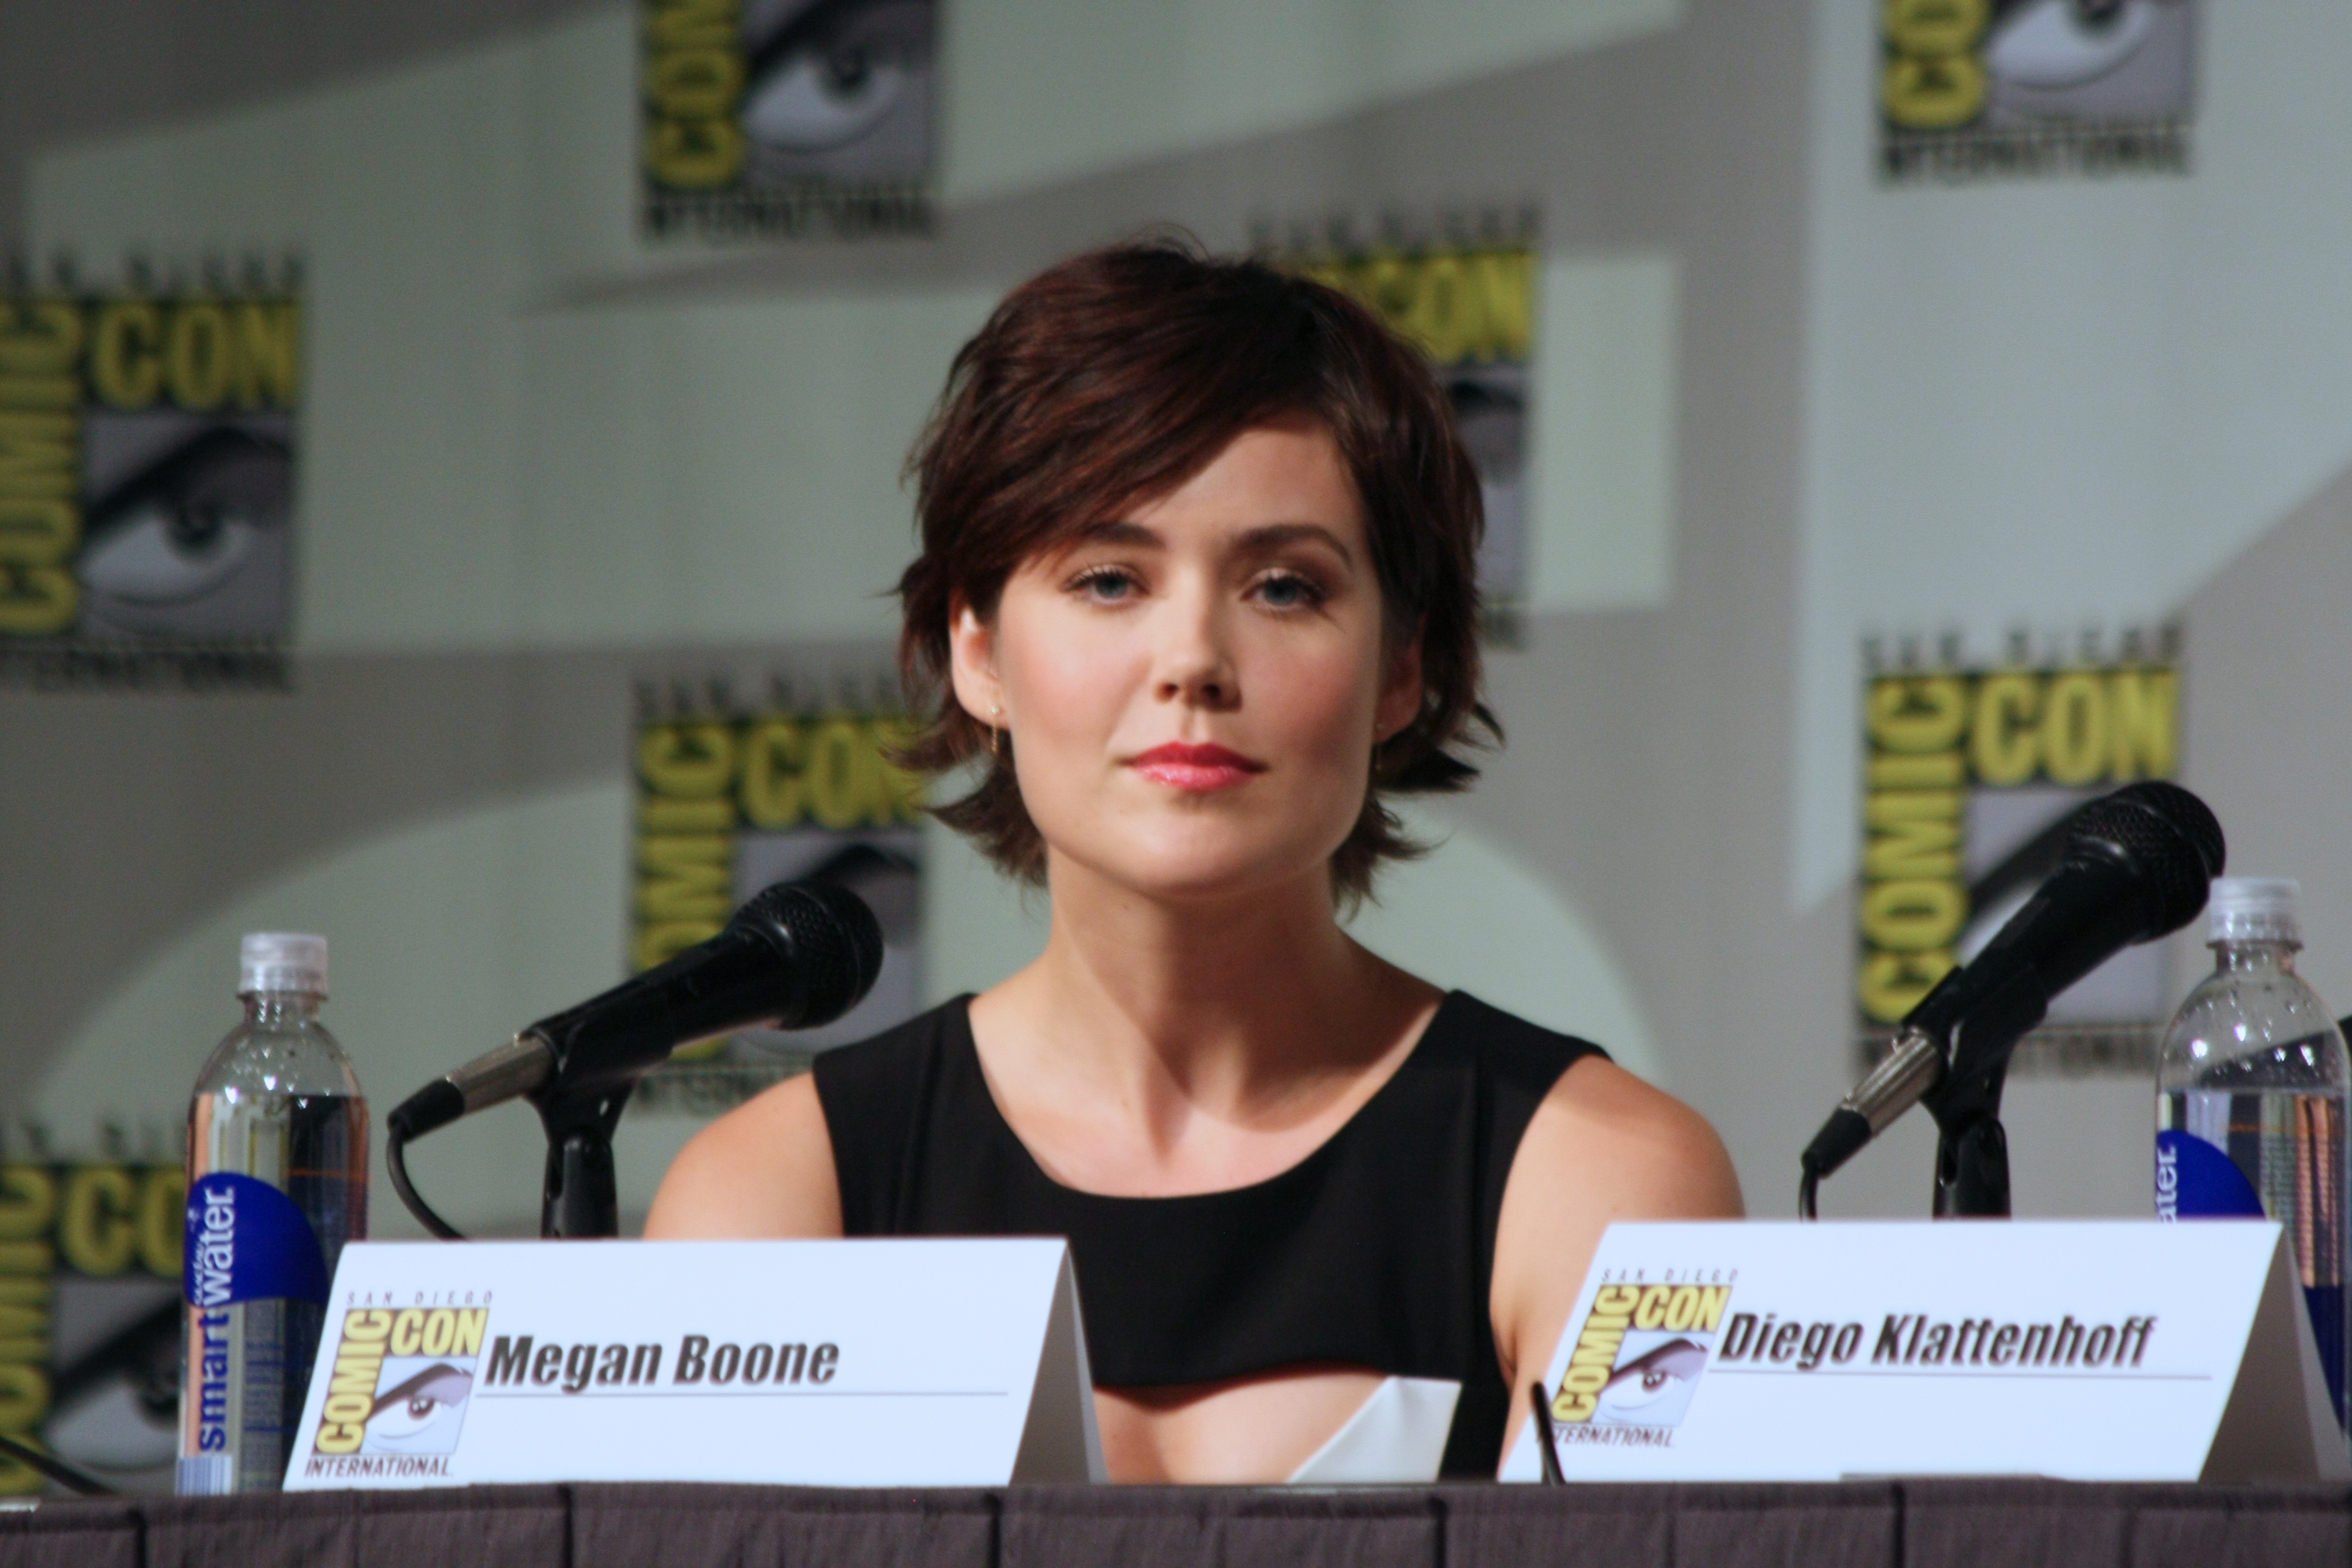 Filethe Blacklist Megan Boone Jpg Wikimedia Commons